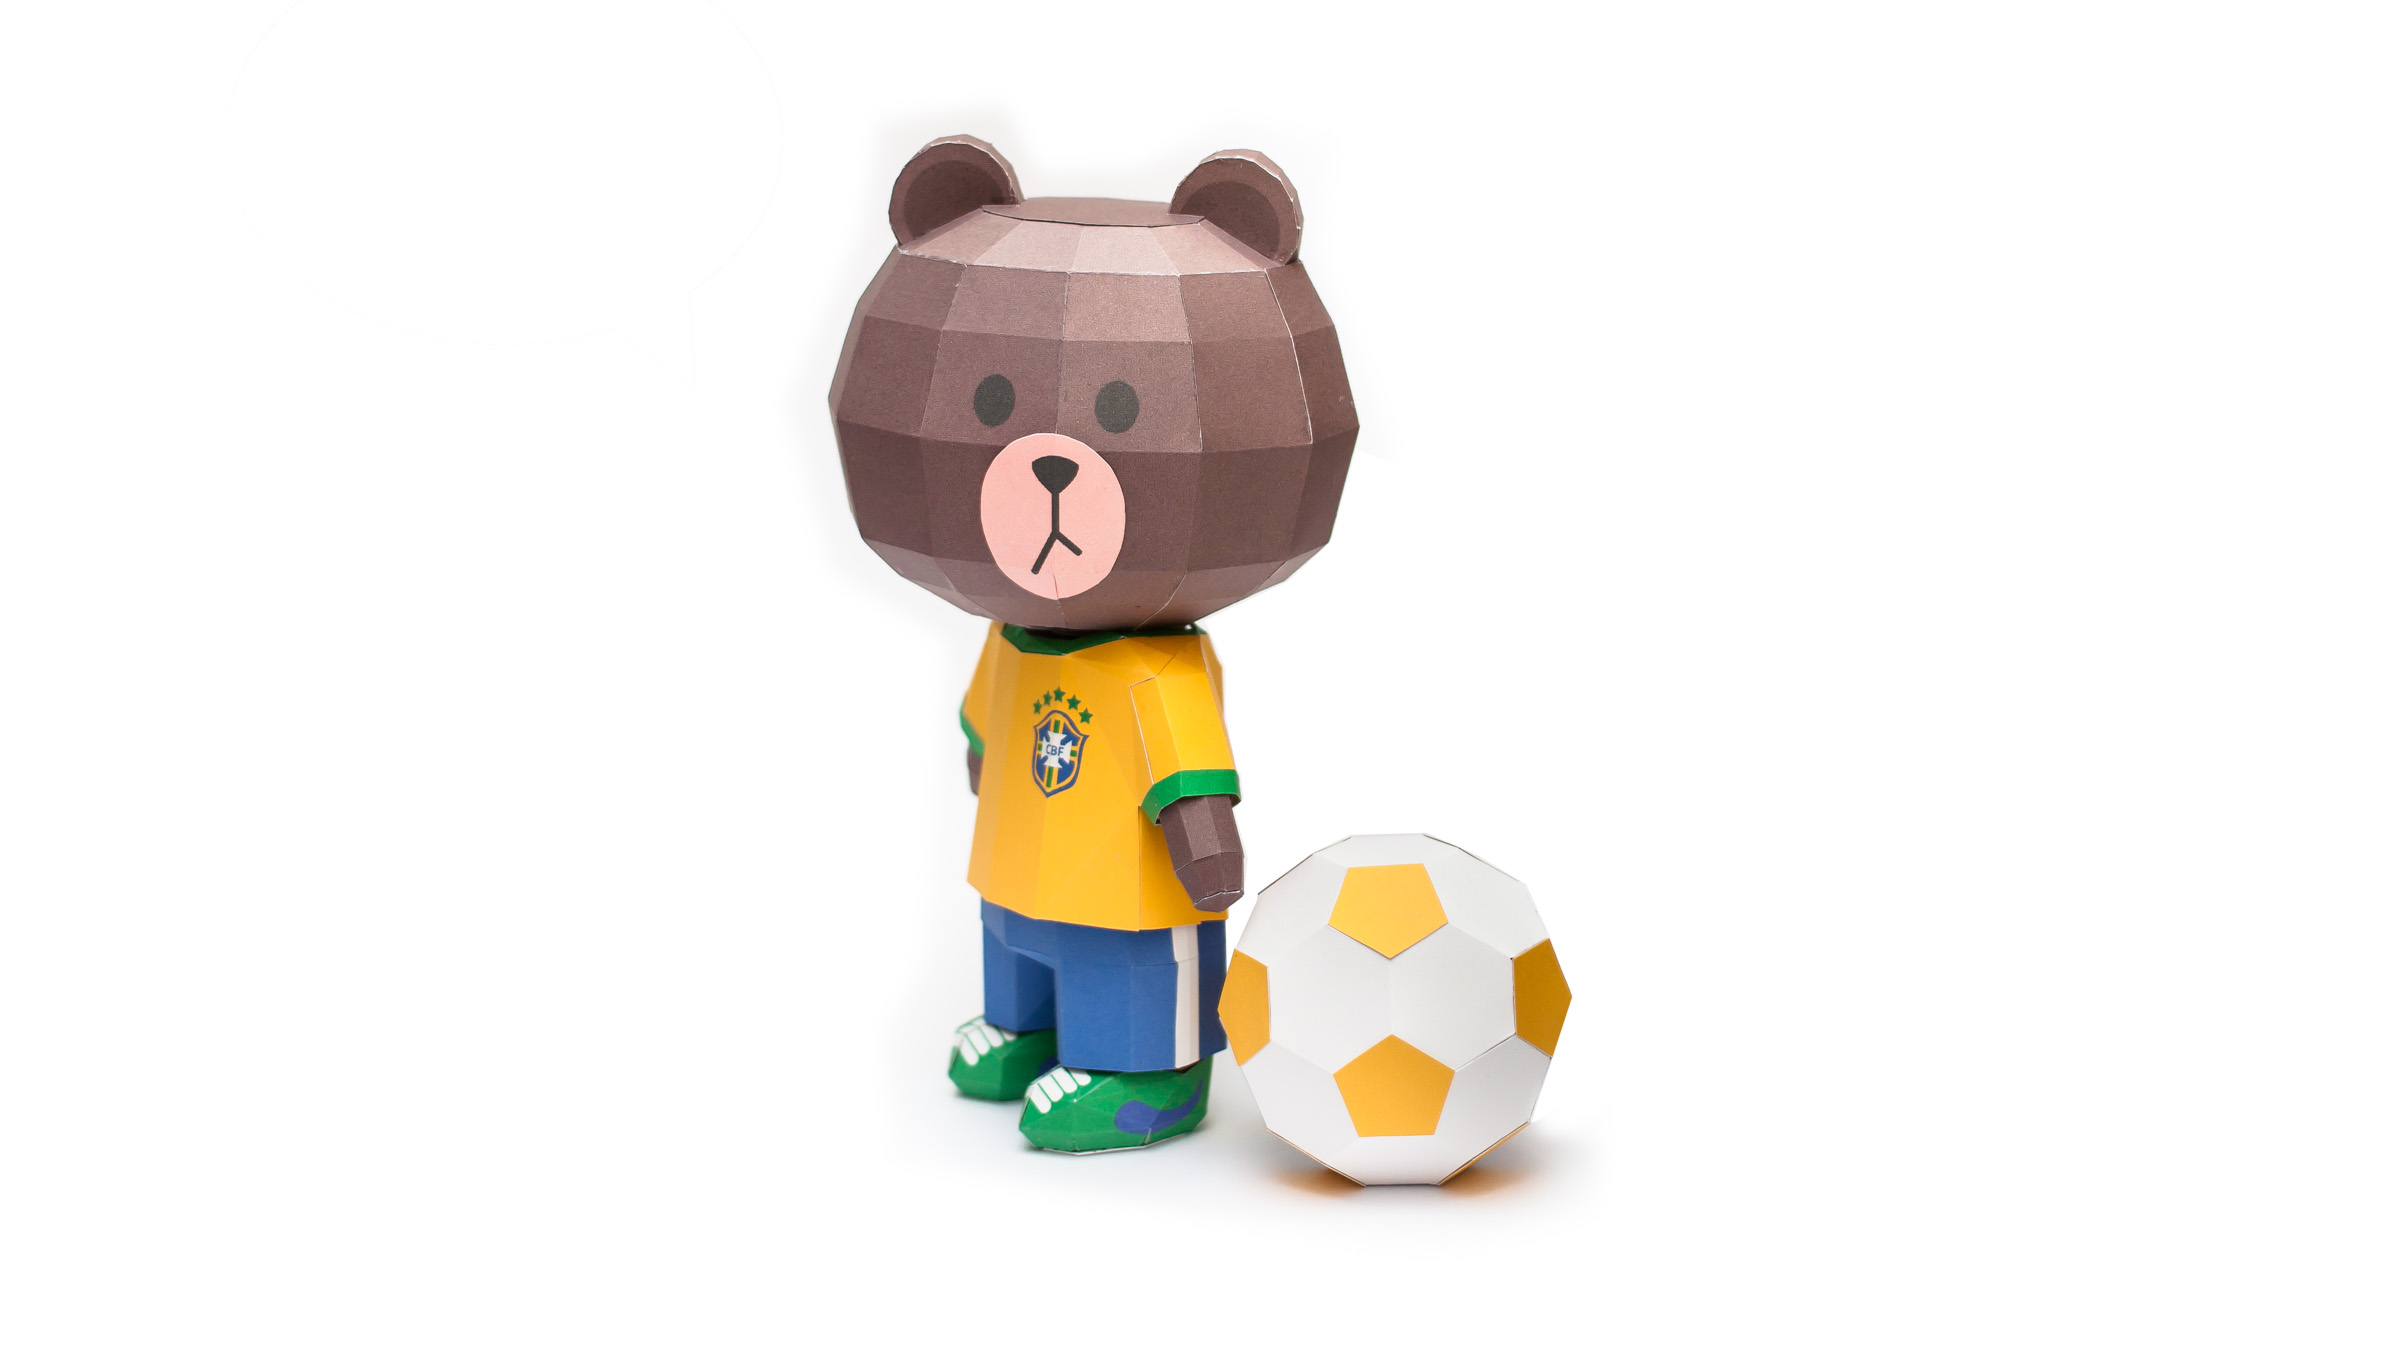 LINE Brown Bear in FIFA World Cup 2014 Brazil Uniform Papercraft Model Finished 006